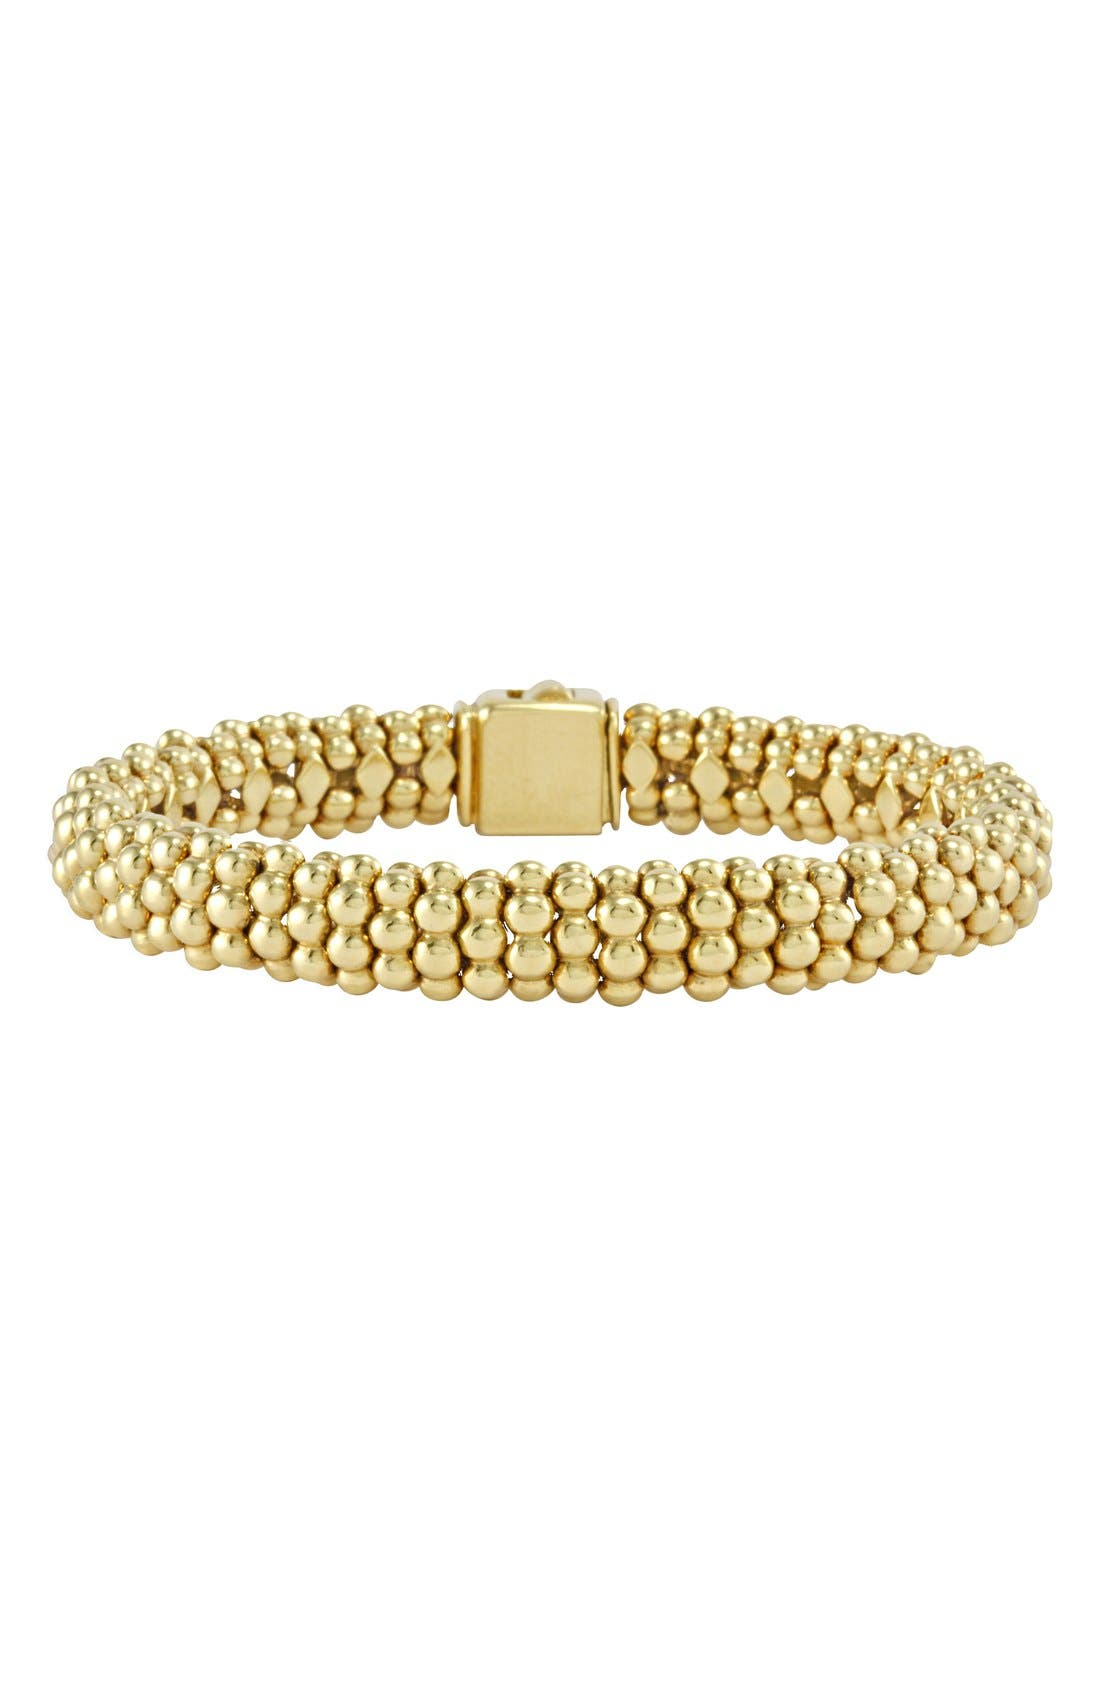 'Caviar Gold' Rope Bracelet,                             Main thumbnail 1, color,                             Gold